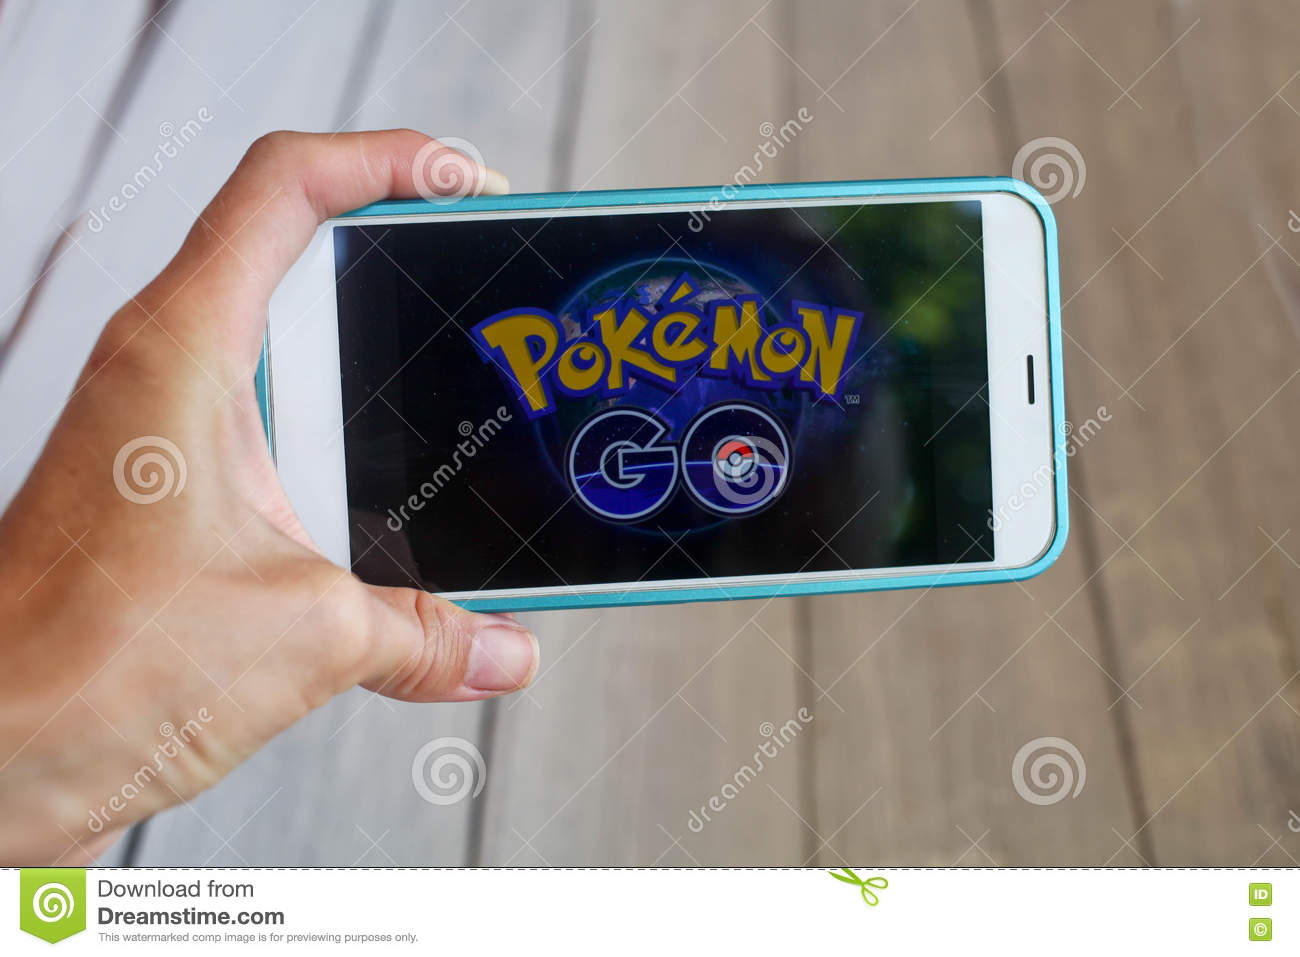 Krasnodar Russia On July 26 2016 Pokemon Go Is A Location Editorial Stock Image Image Of Pikachu Outdoor 75003554